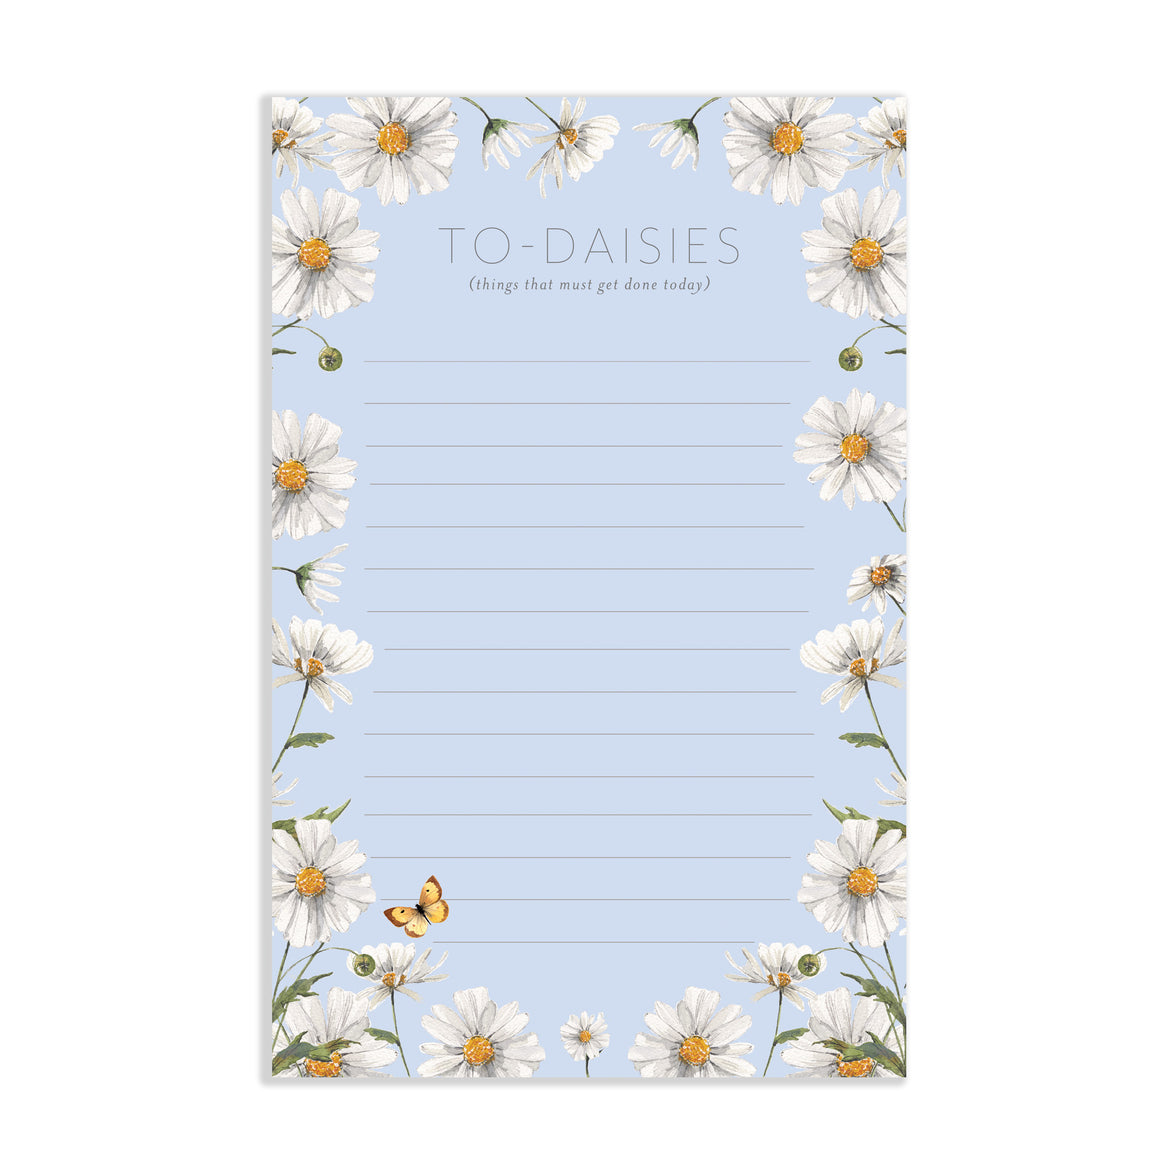 To-Daisies Notepad